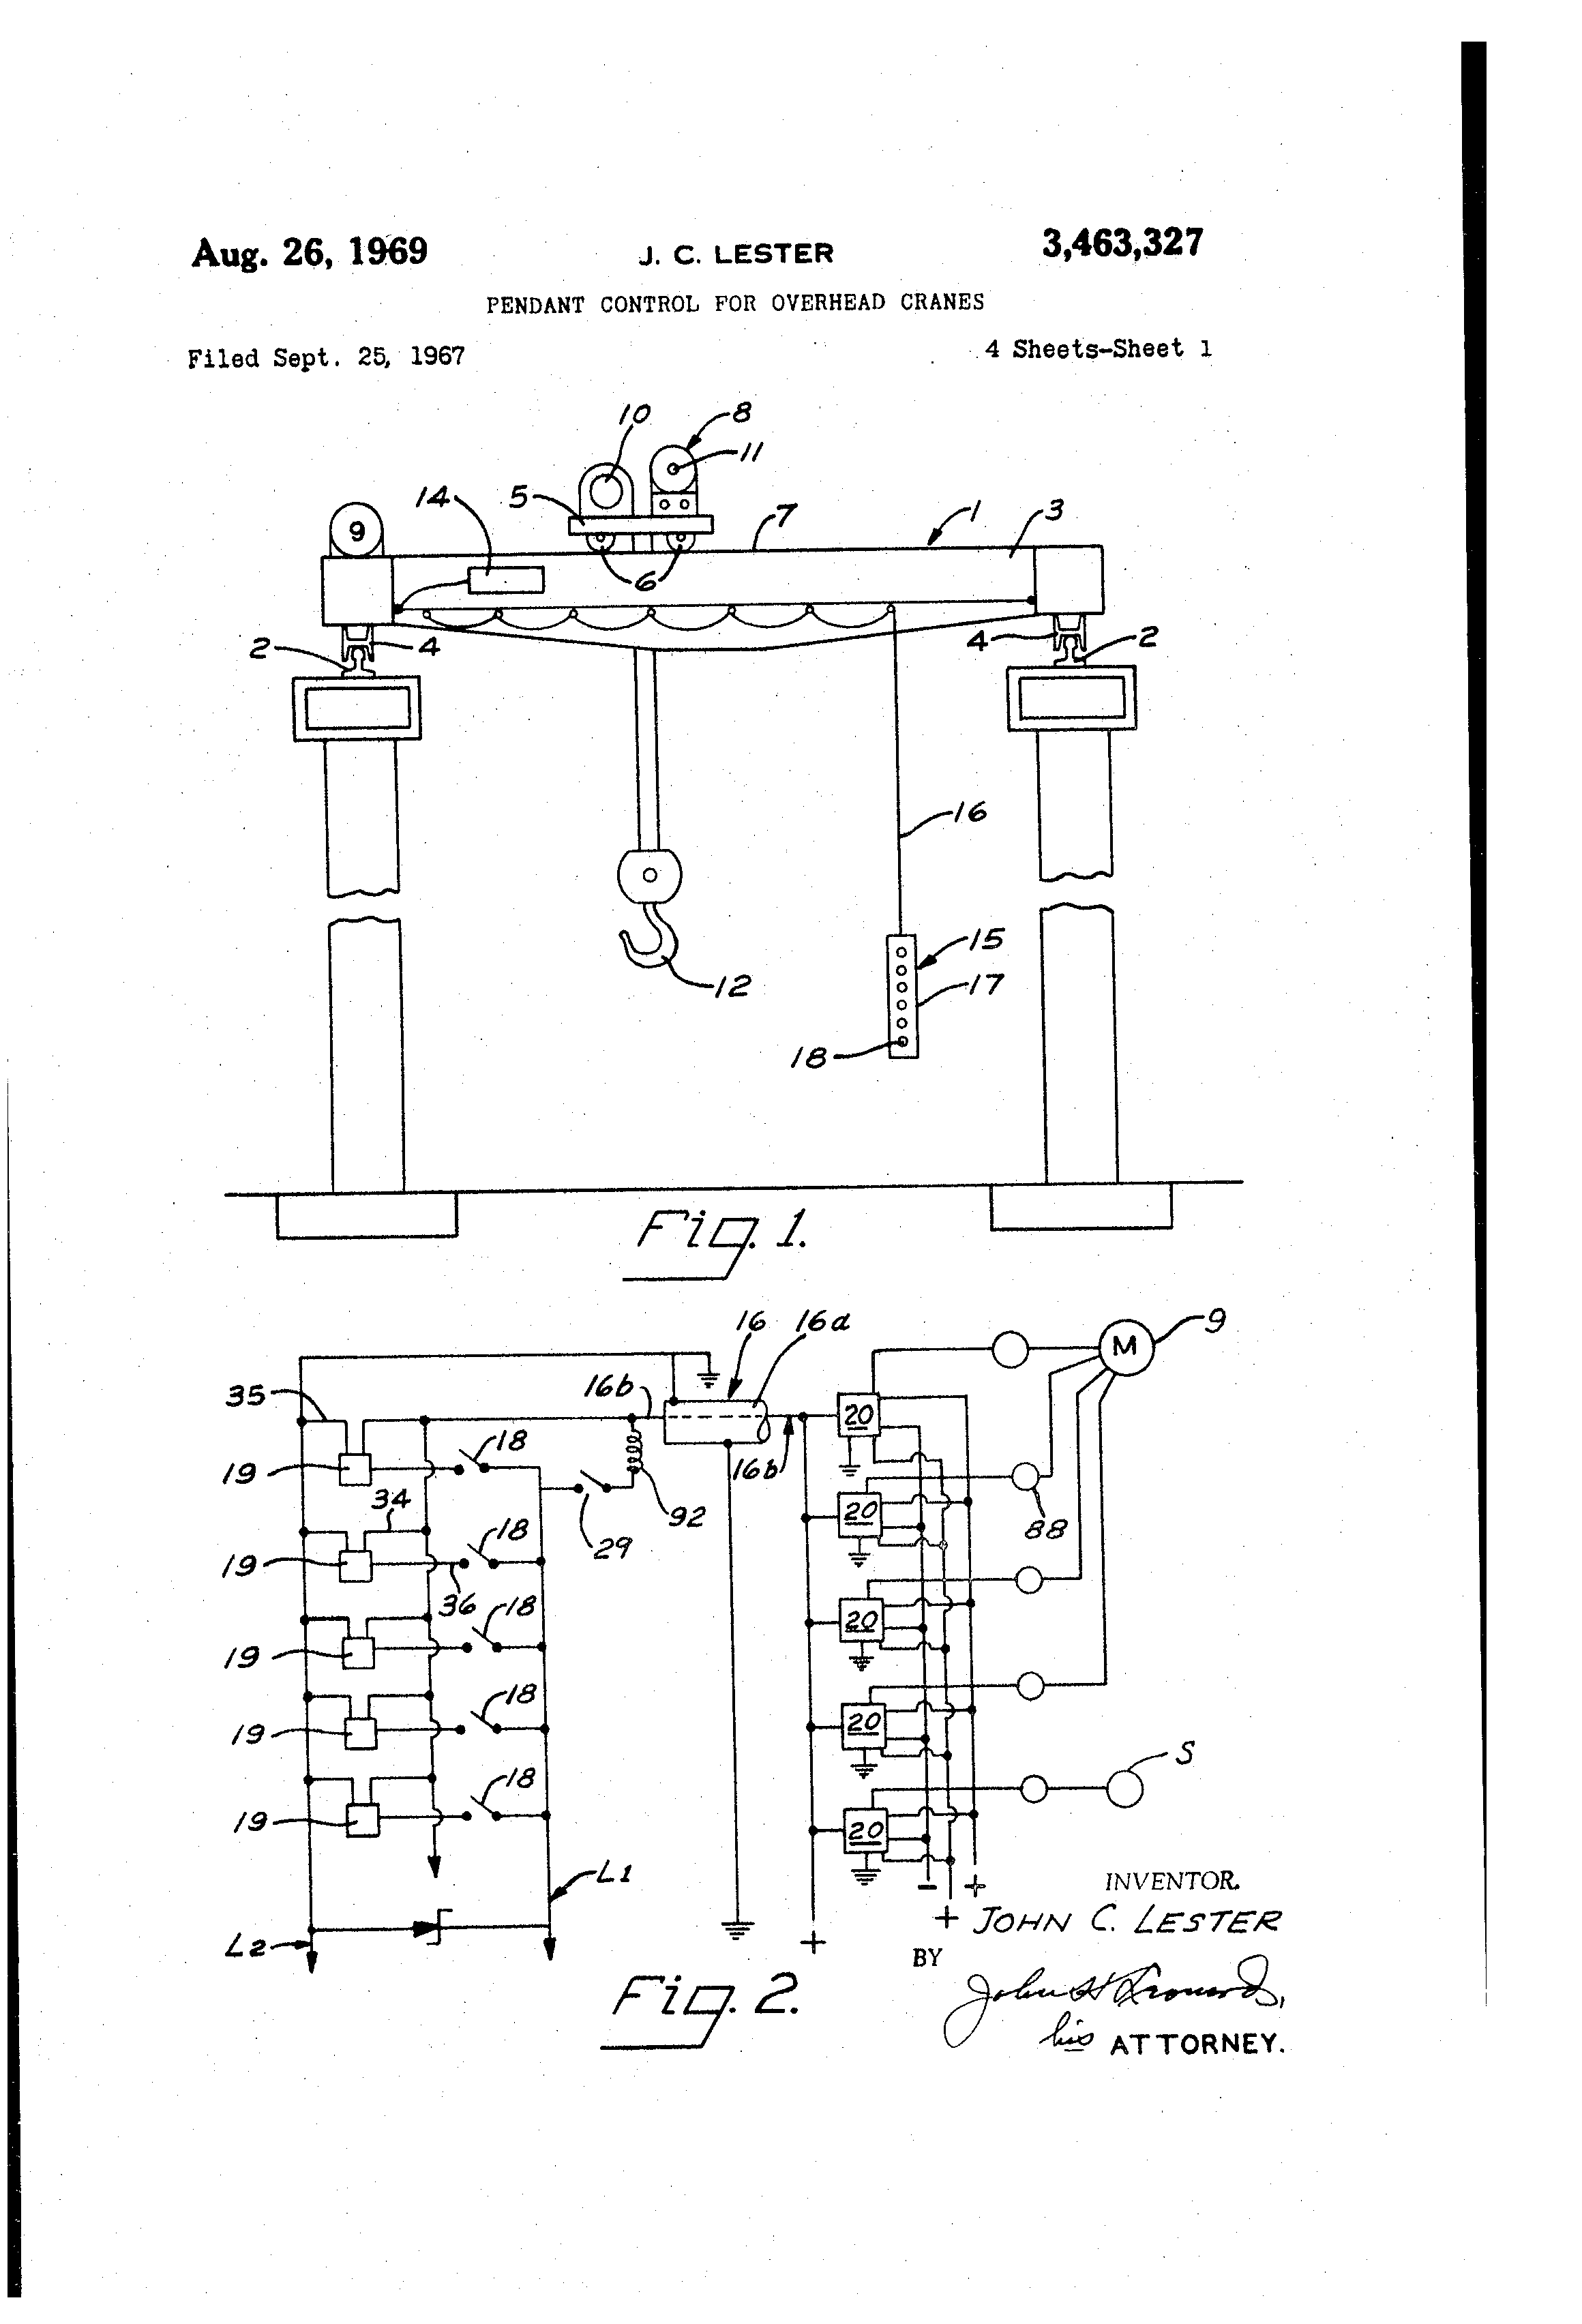 US3463327 0 patent us3463327 pendant control for overhead cranes google lester controls wiring diagrams at gsmportal.co